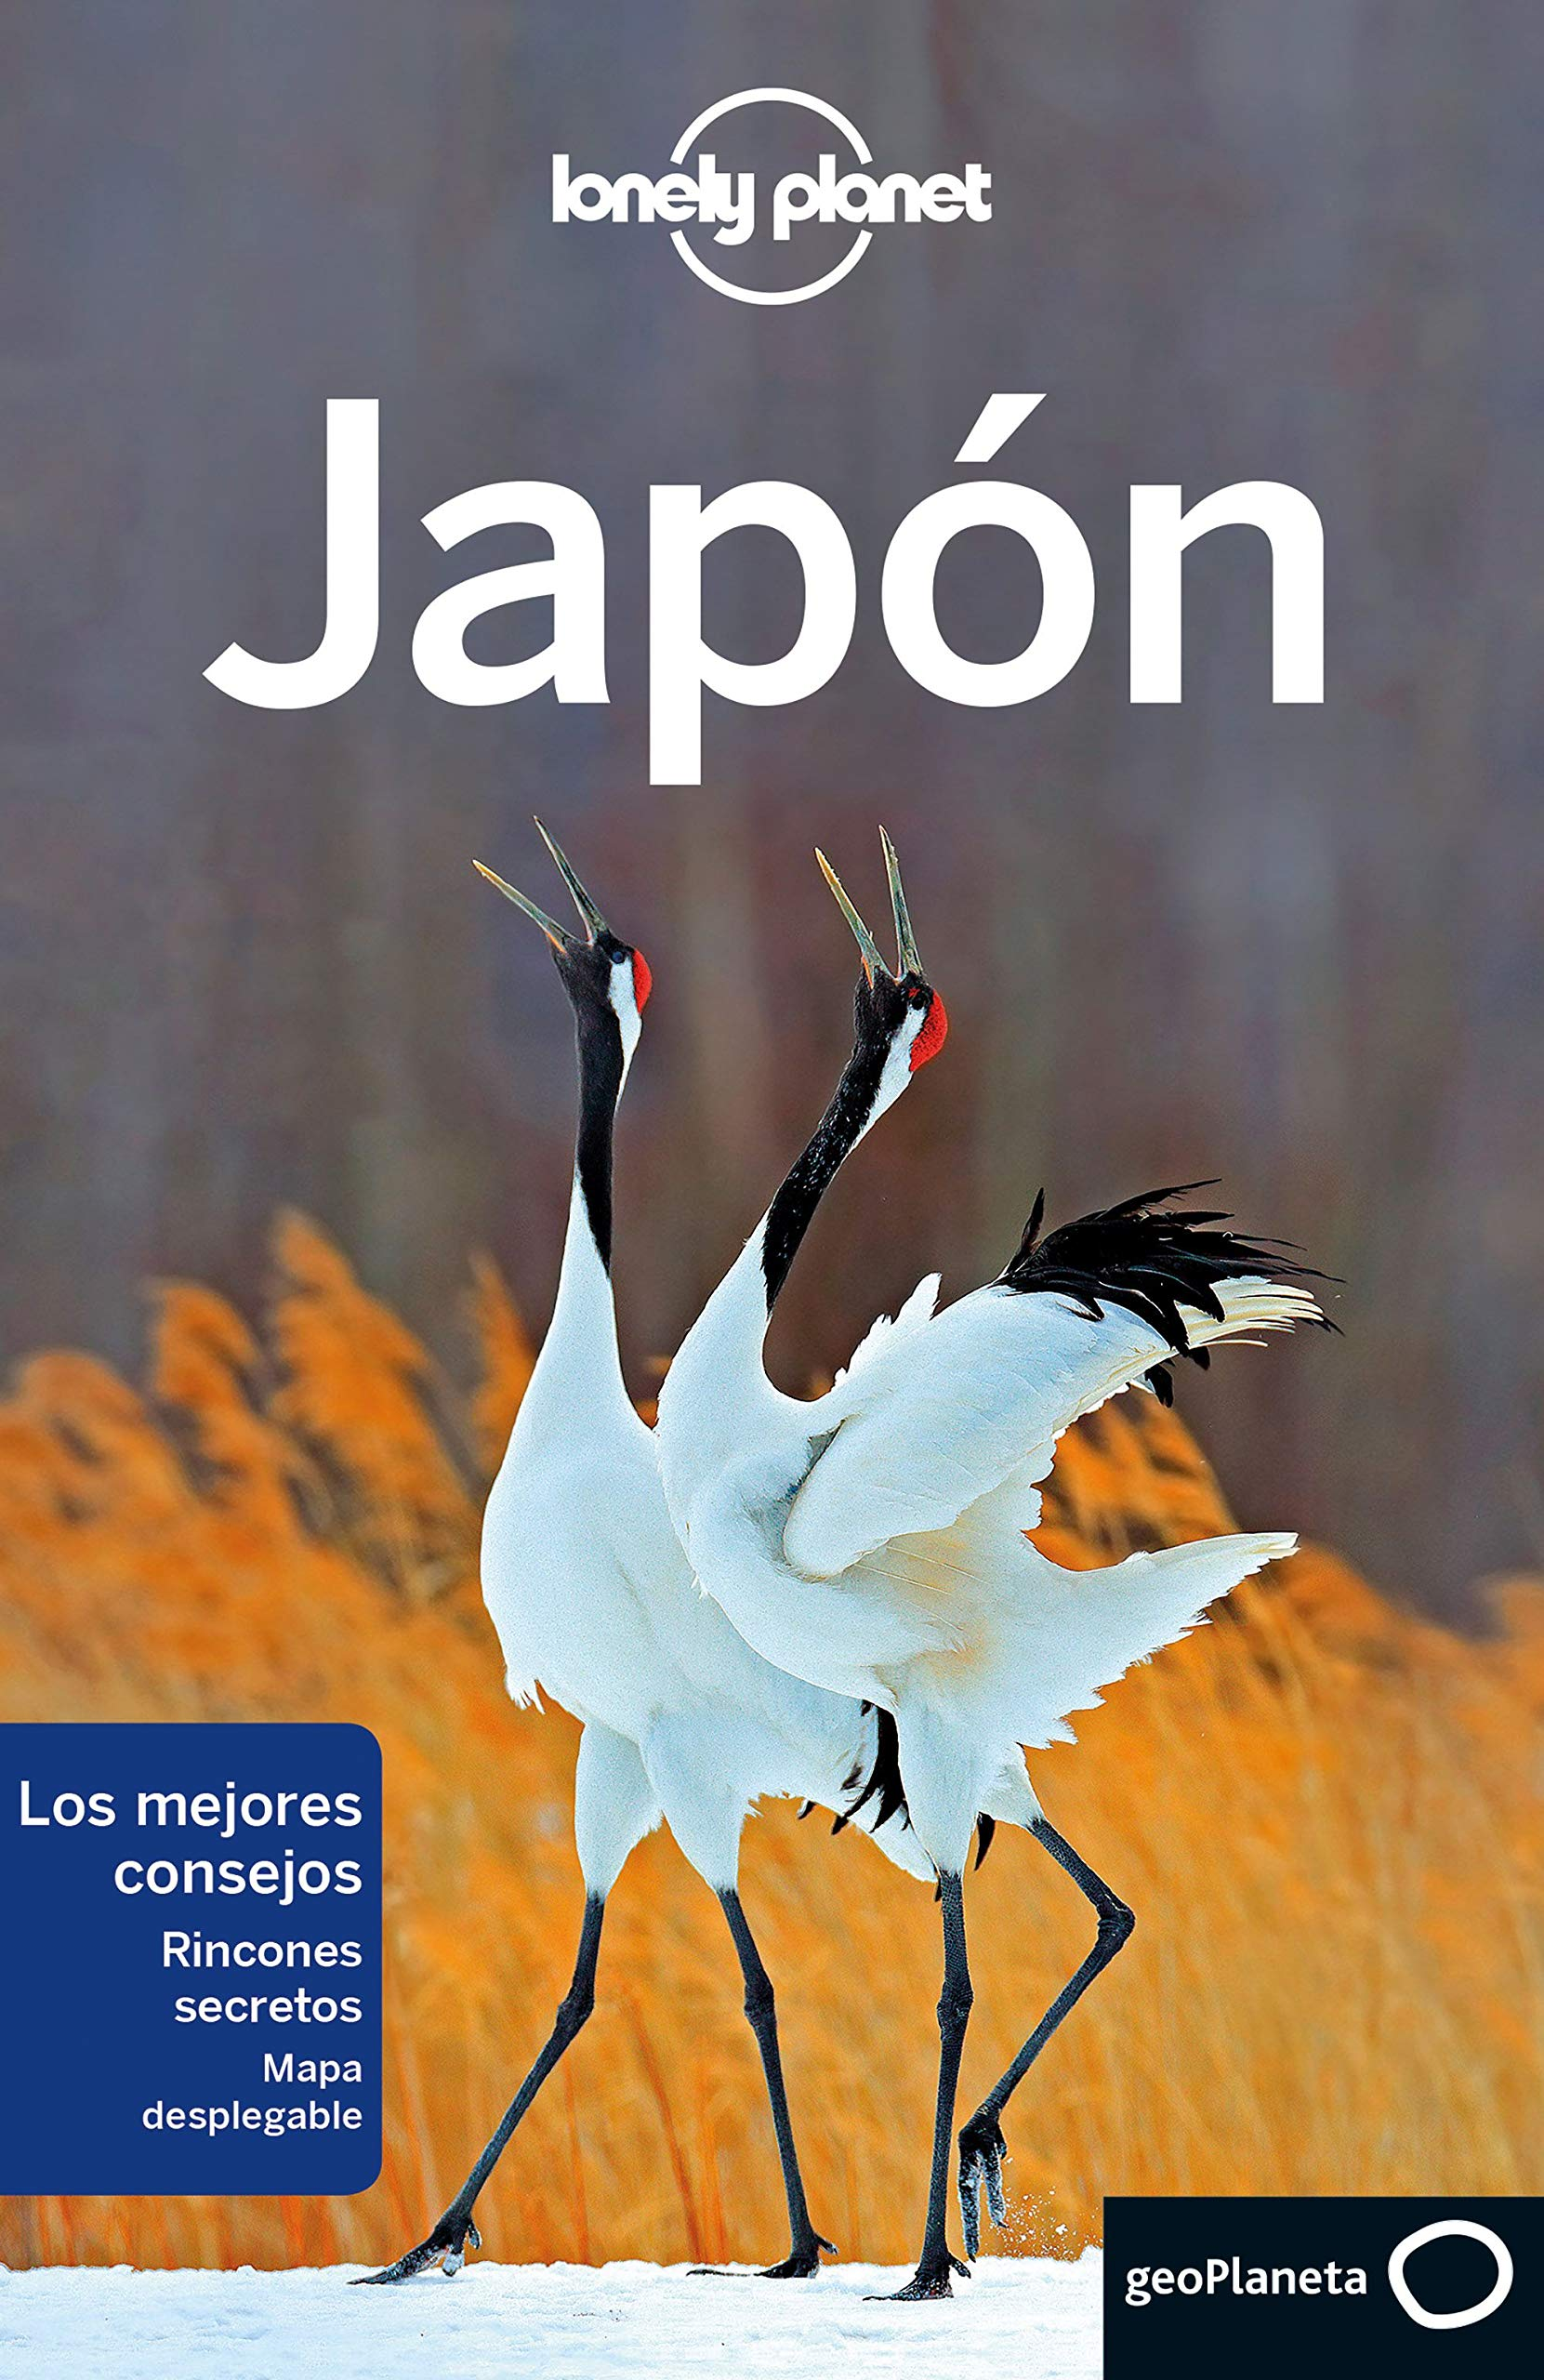 Japón 7 (Guías de País Lonely Planet): Amazon.es: Milner, Rebecca, Bartlett, Ray, Bender, Andrew, Forge, Samantha, Mclachlan, Craig, Morgan, Kate, OMalley, Thomas, Richmond, Simon, Tang, Phillip, Walker, Benedict, DArc Taylor, Stephanie, Gippini